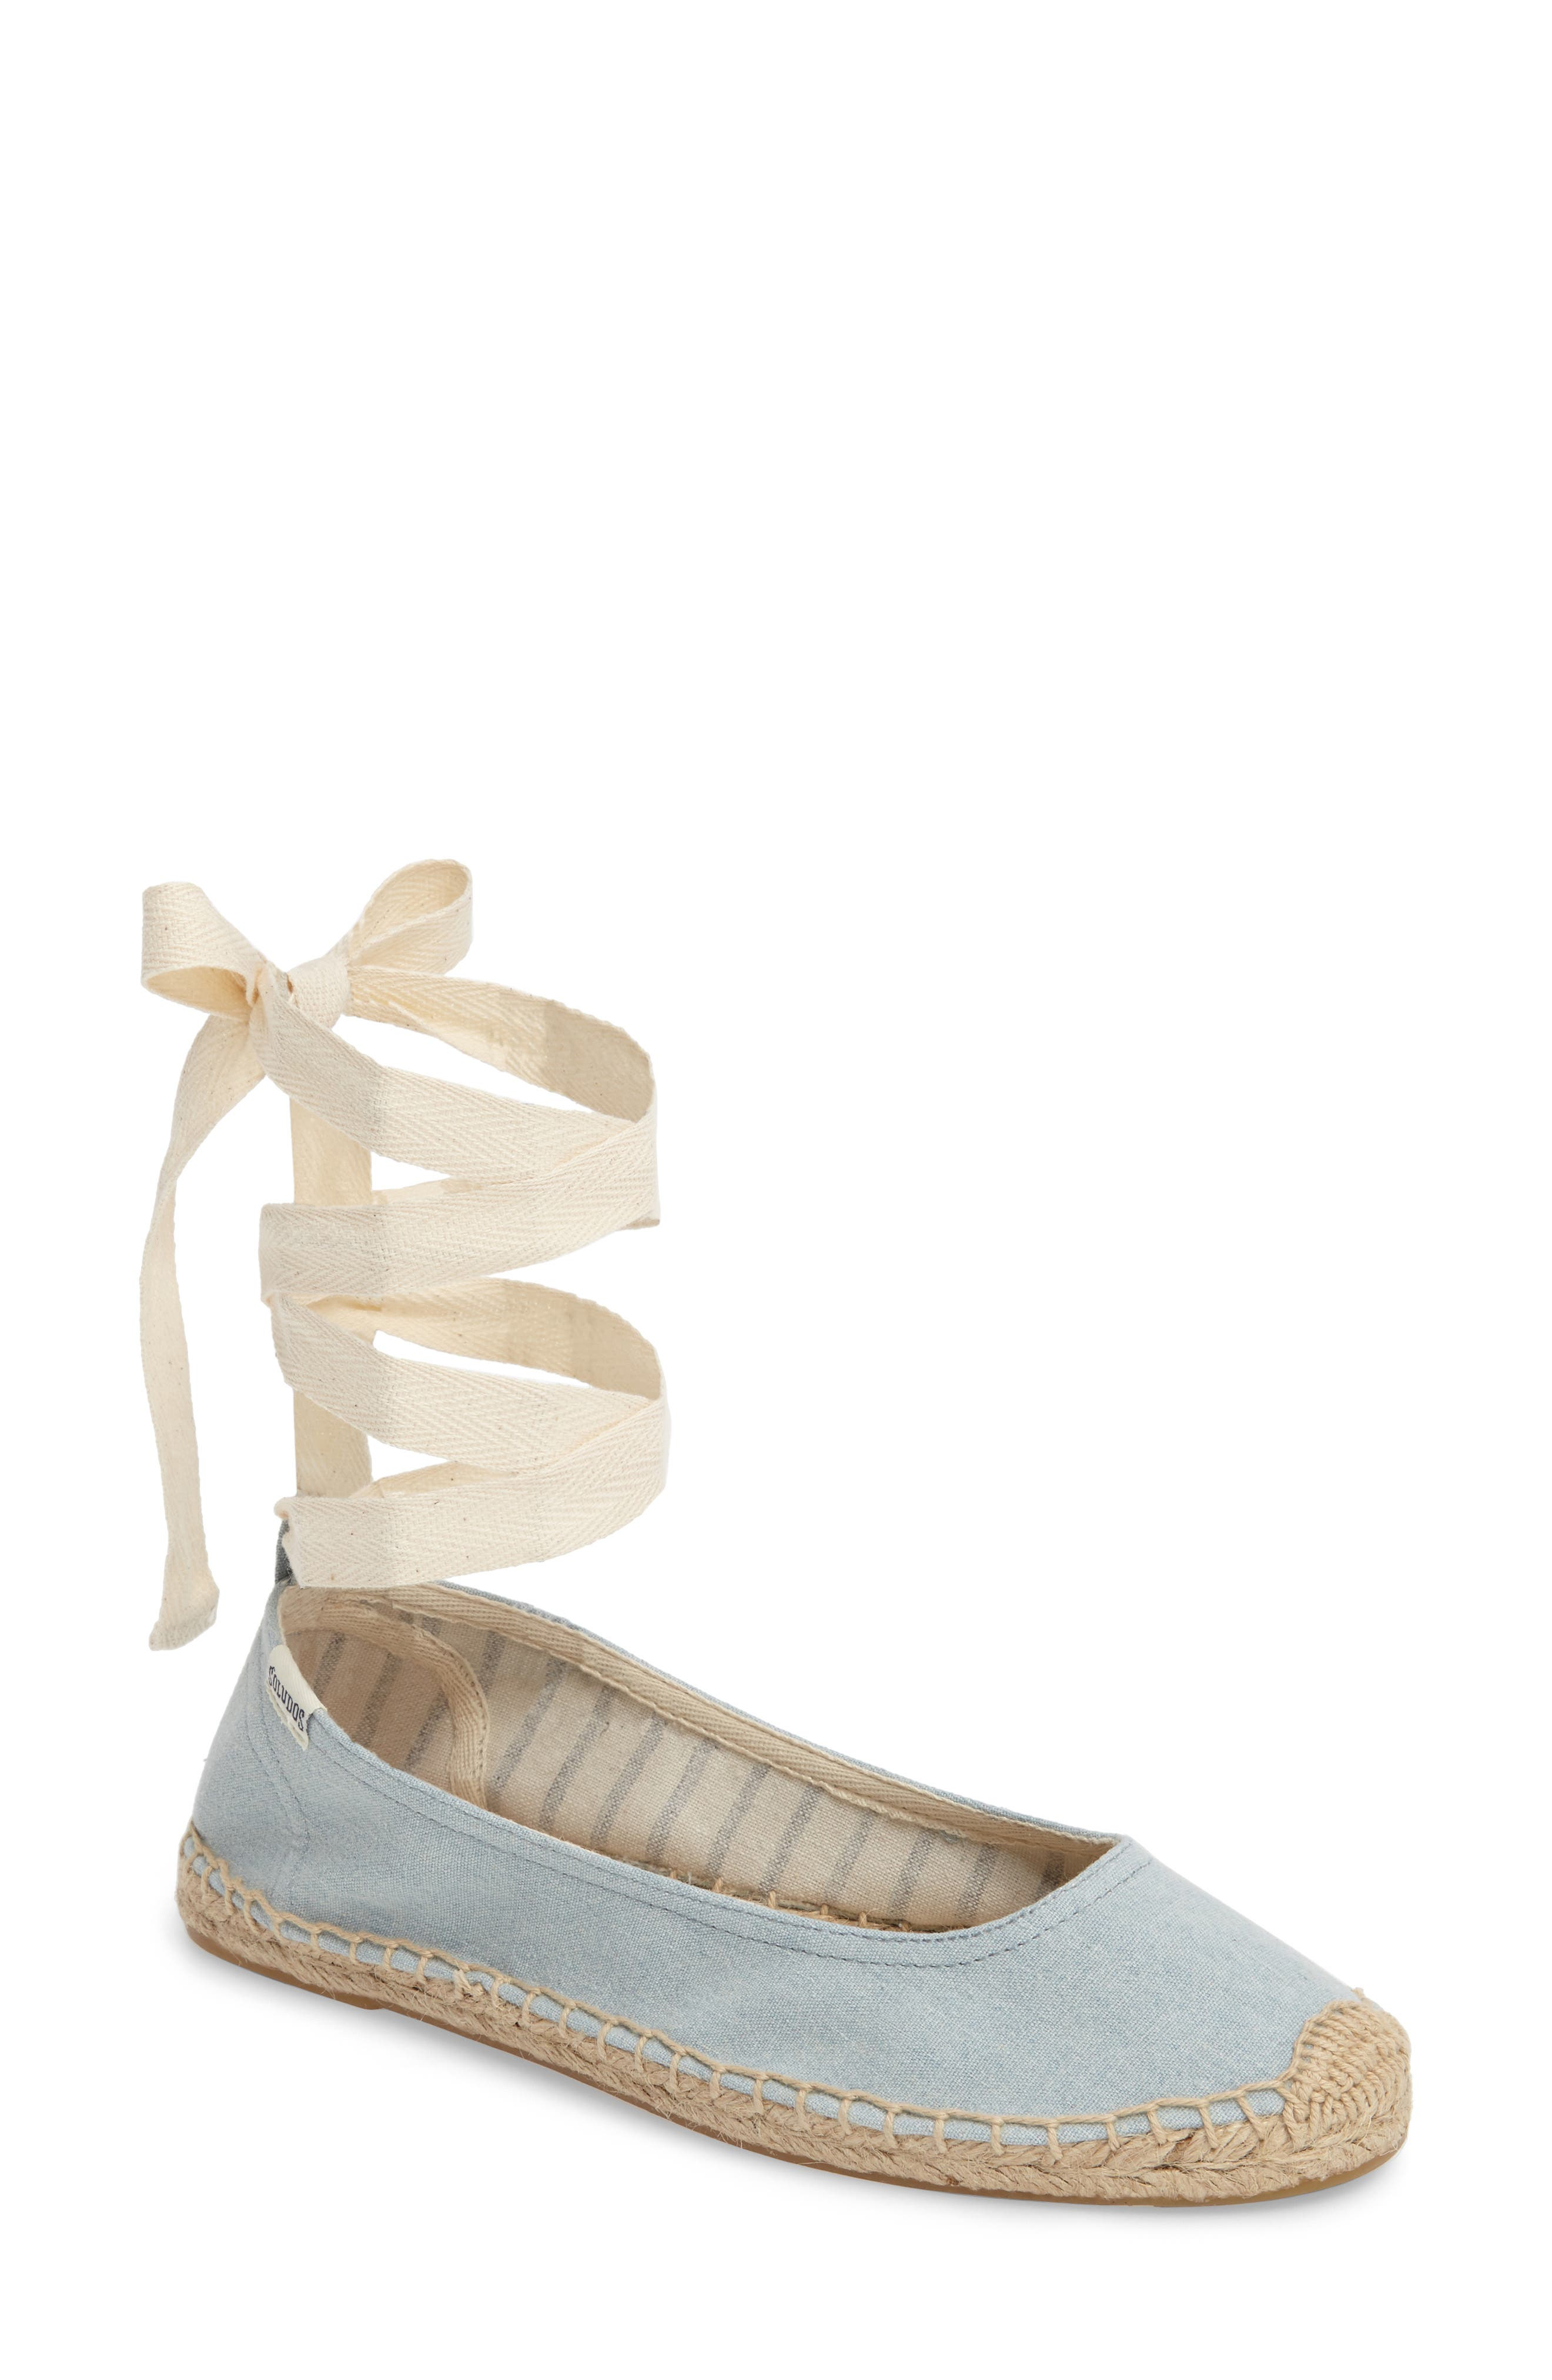 Alternate Image 1 Selected - Soludos Ankle Tie Espadrille Flat (Women)